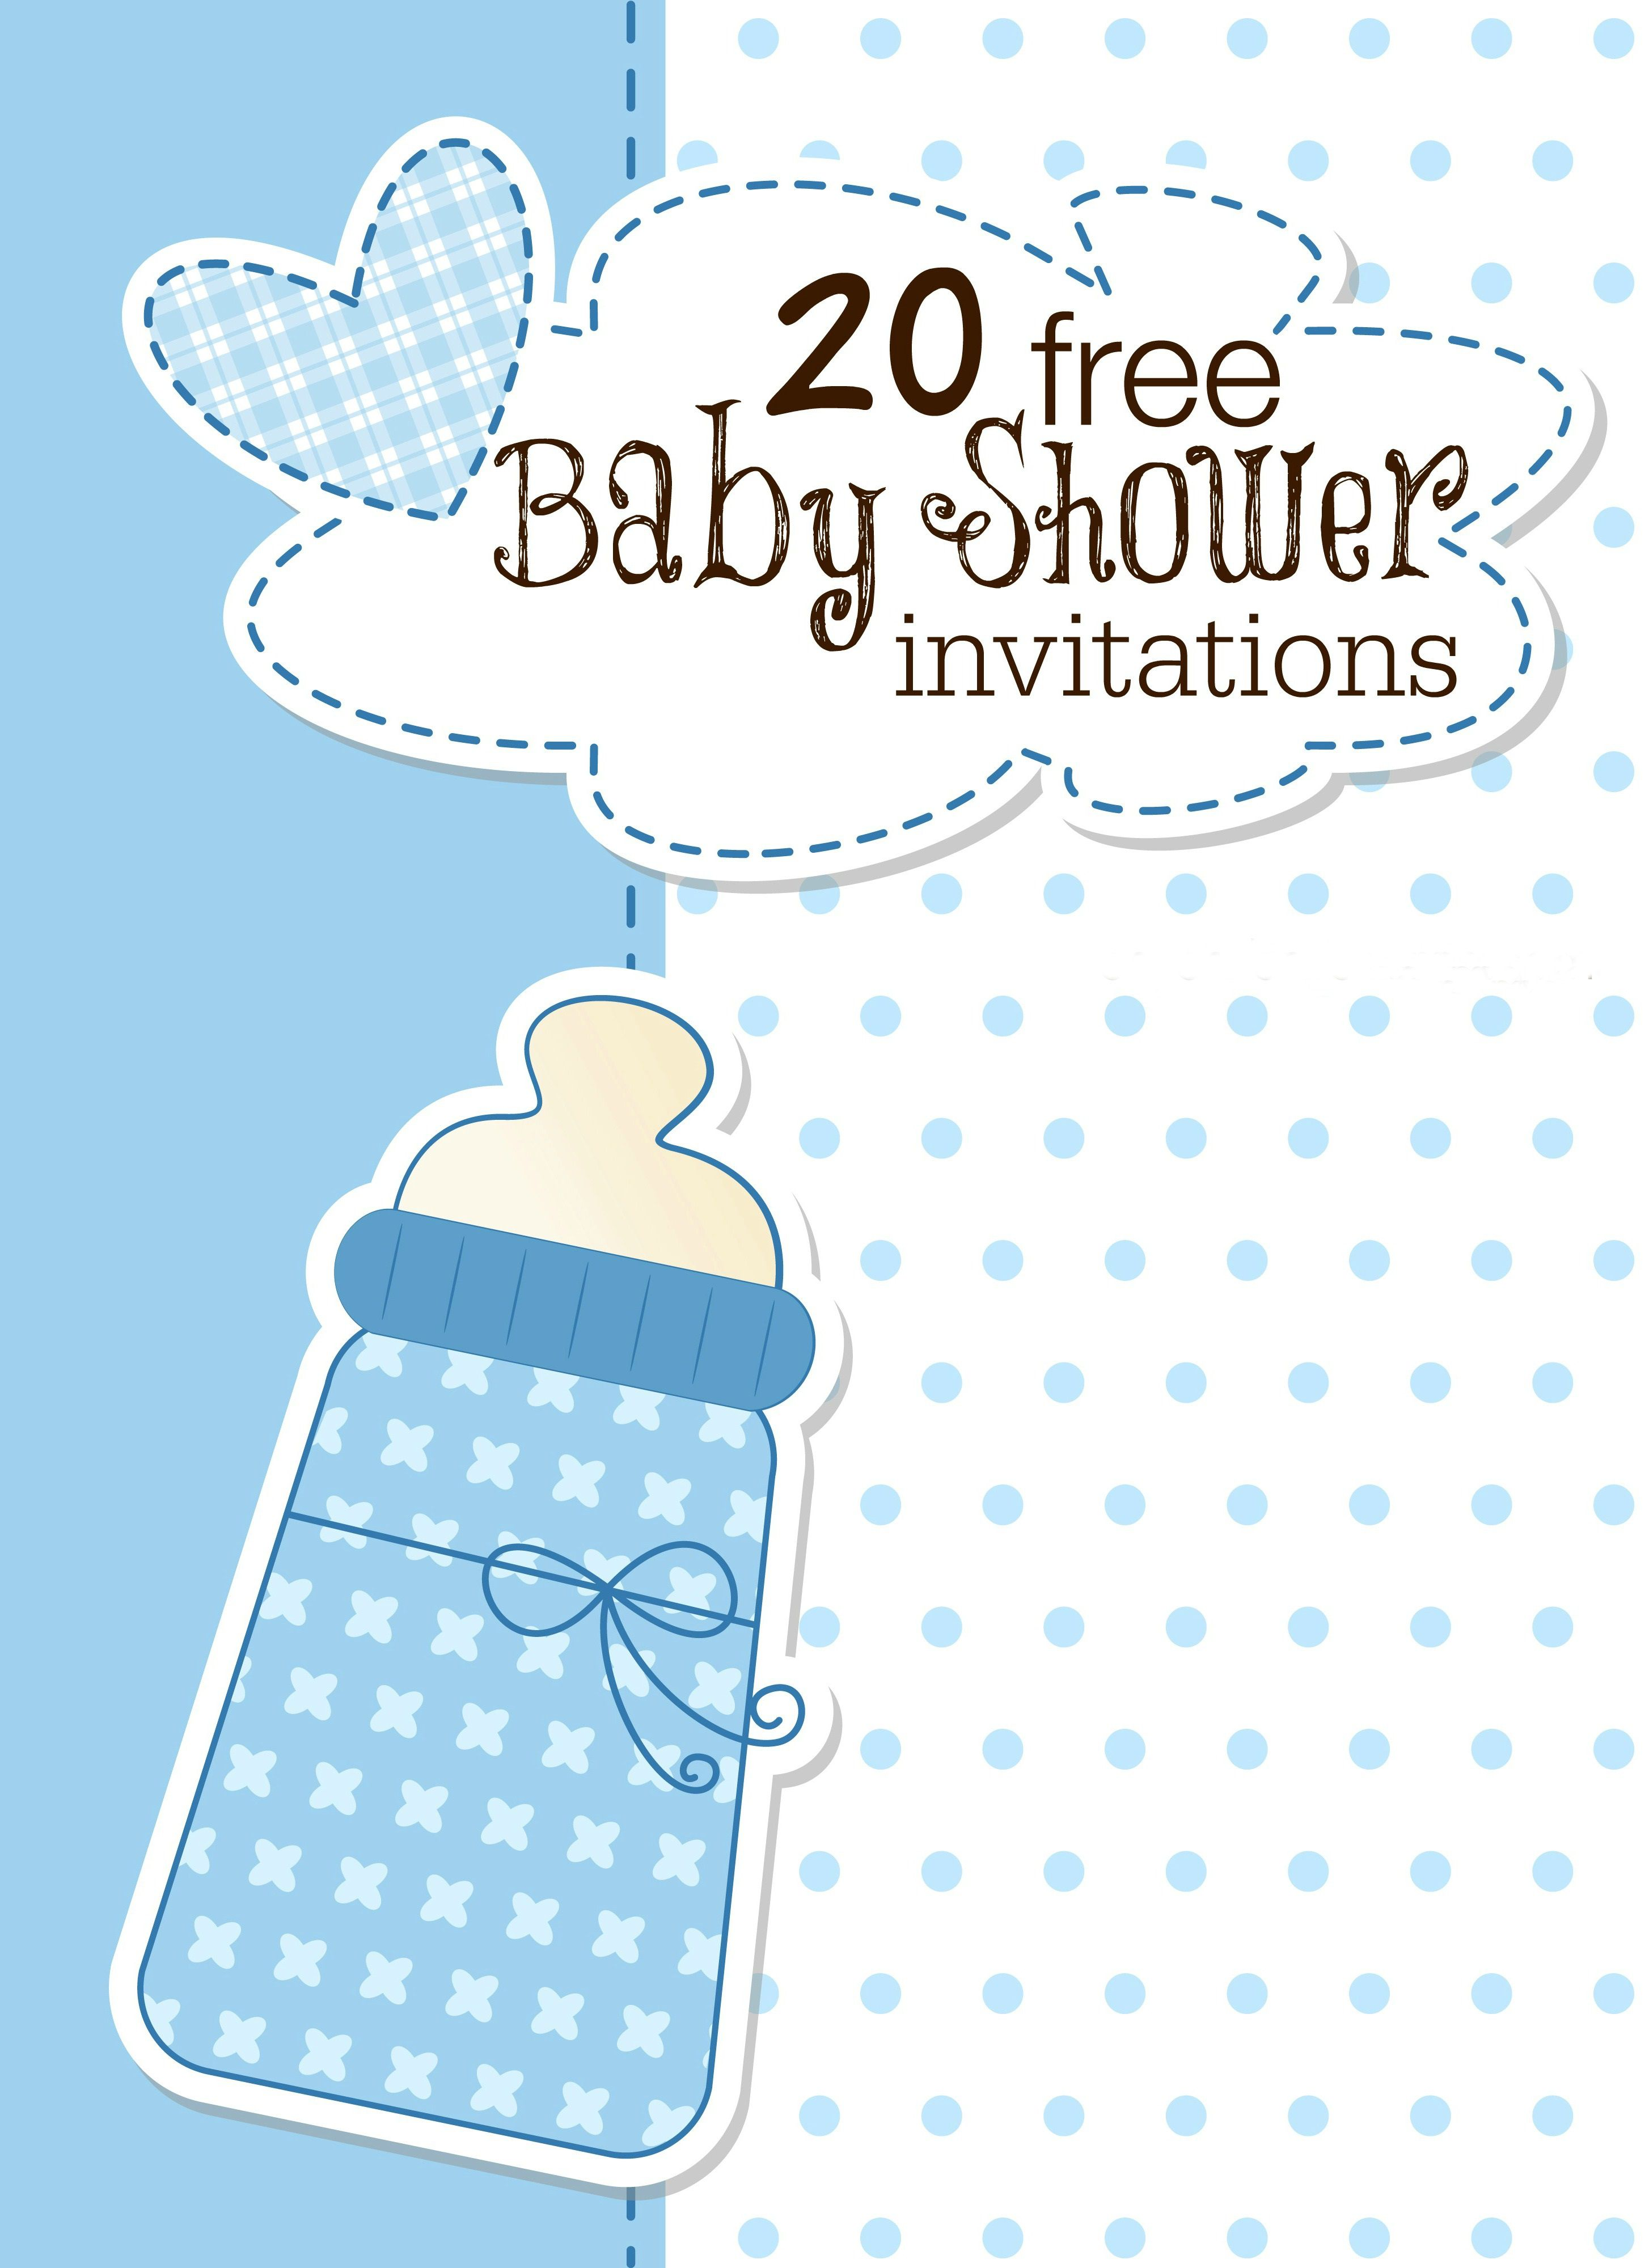 008 Incredible Free Baby Shower Invitation Template For Boy Highest Clarity Full